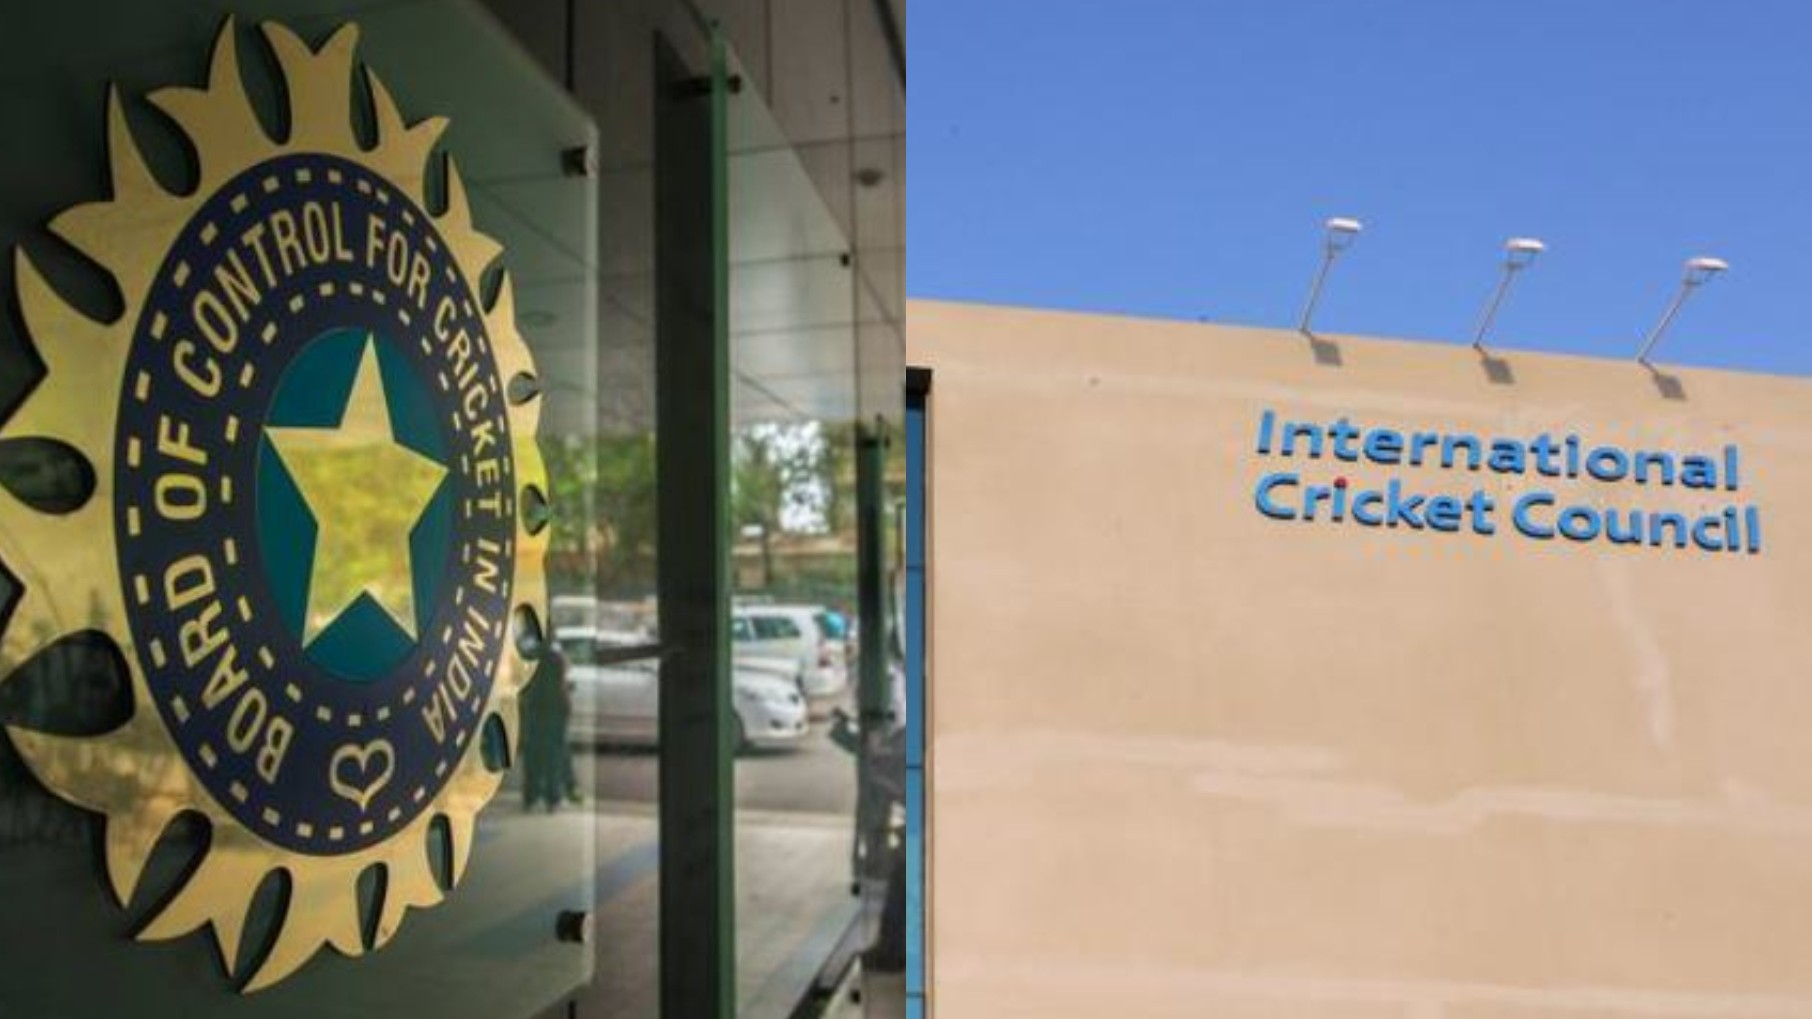 ICC and BCCI working together to resolve tax issue, says ICC spokesperson: Reports